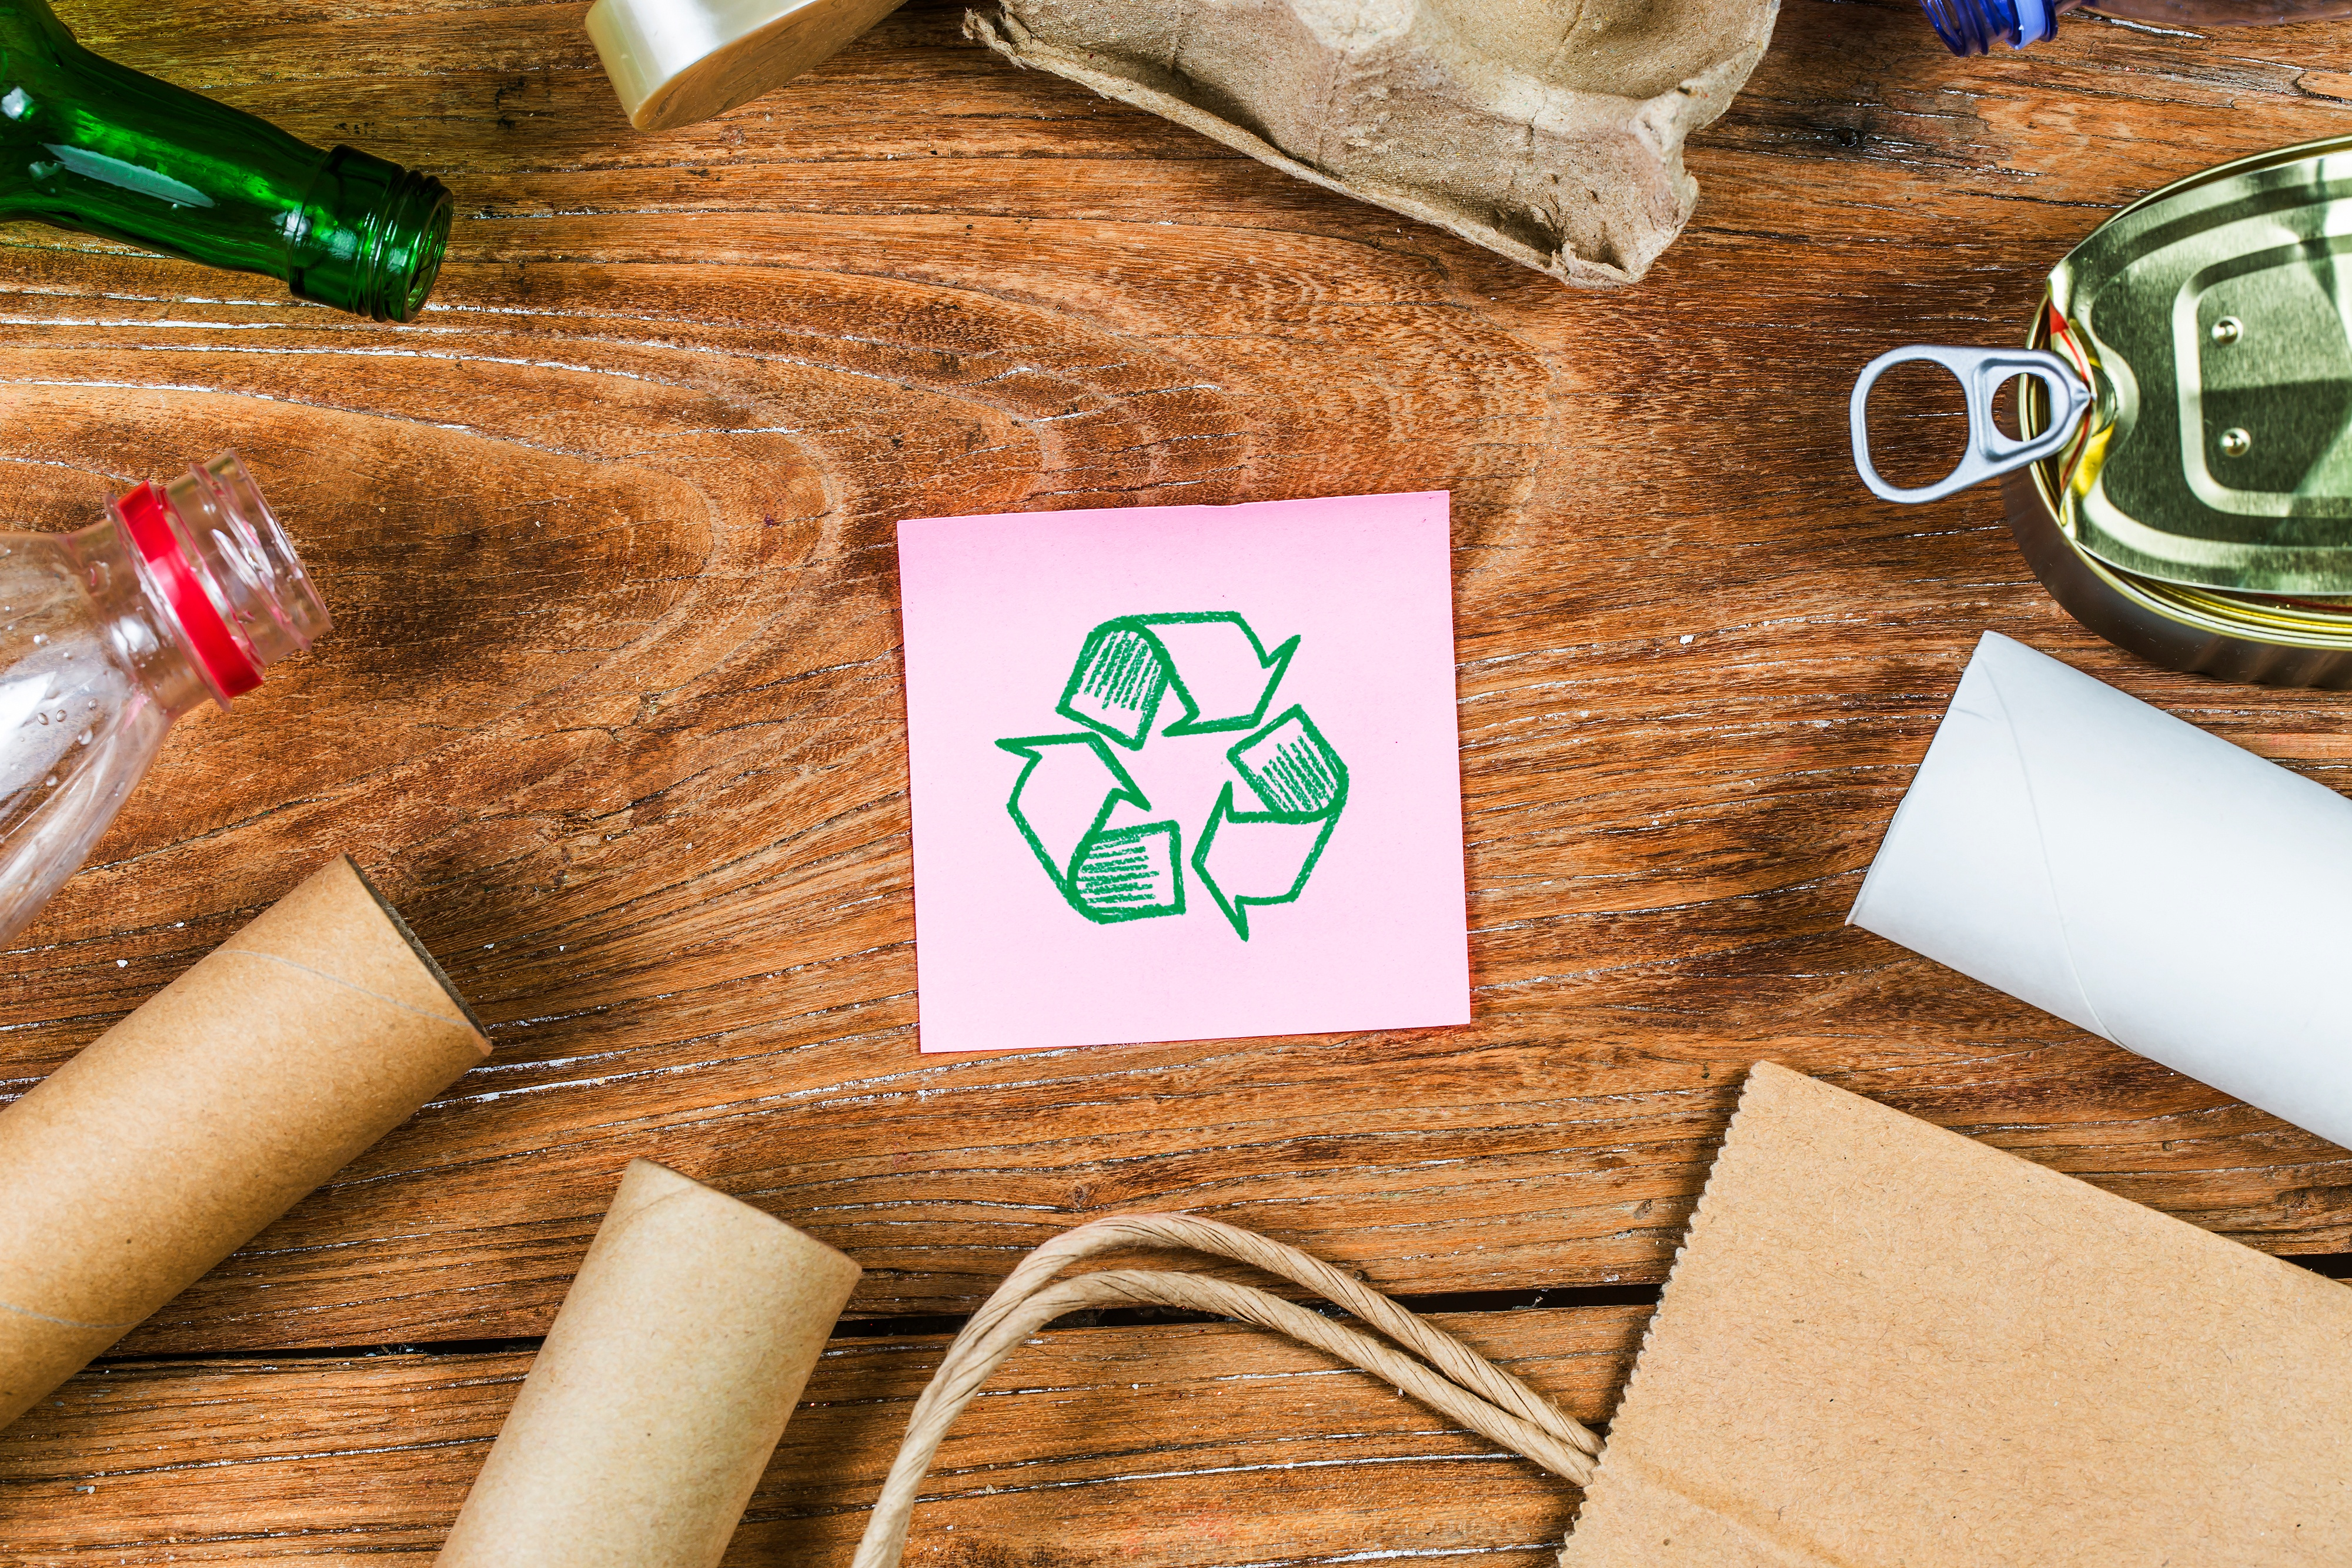 5 Ways your Business Can Prevent Plastic Waste